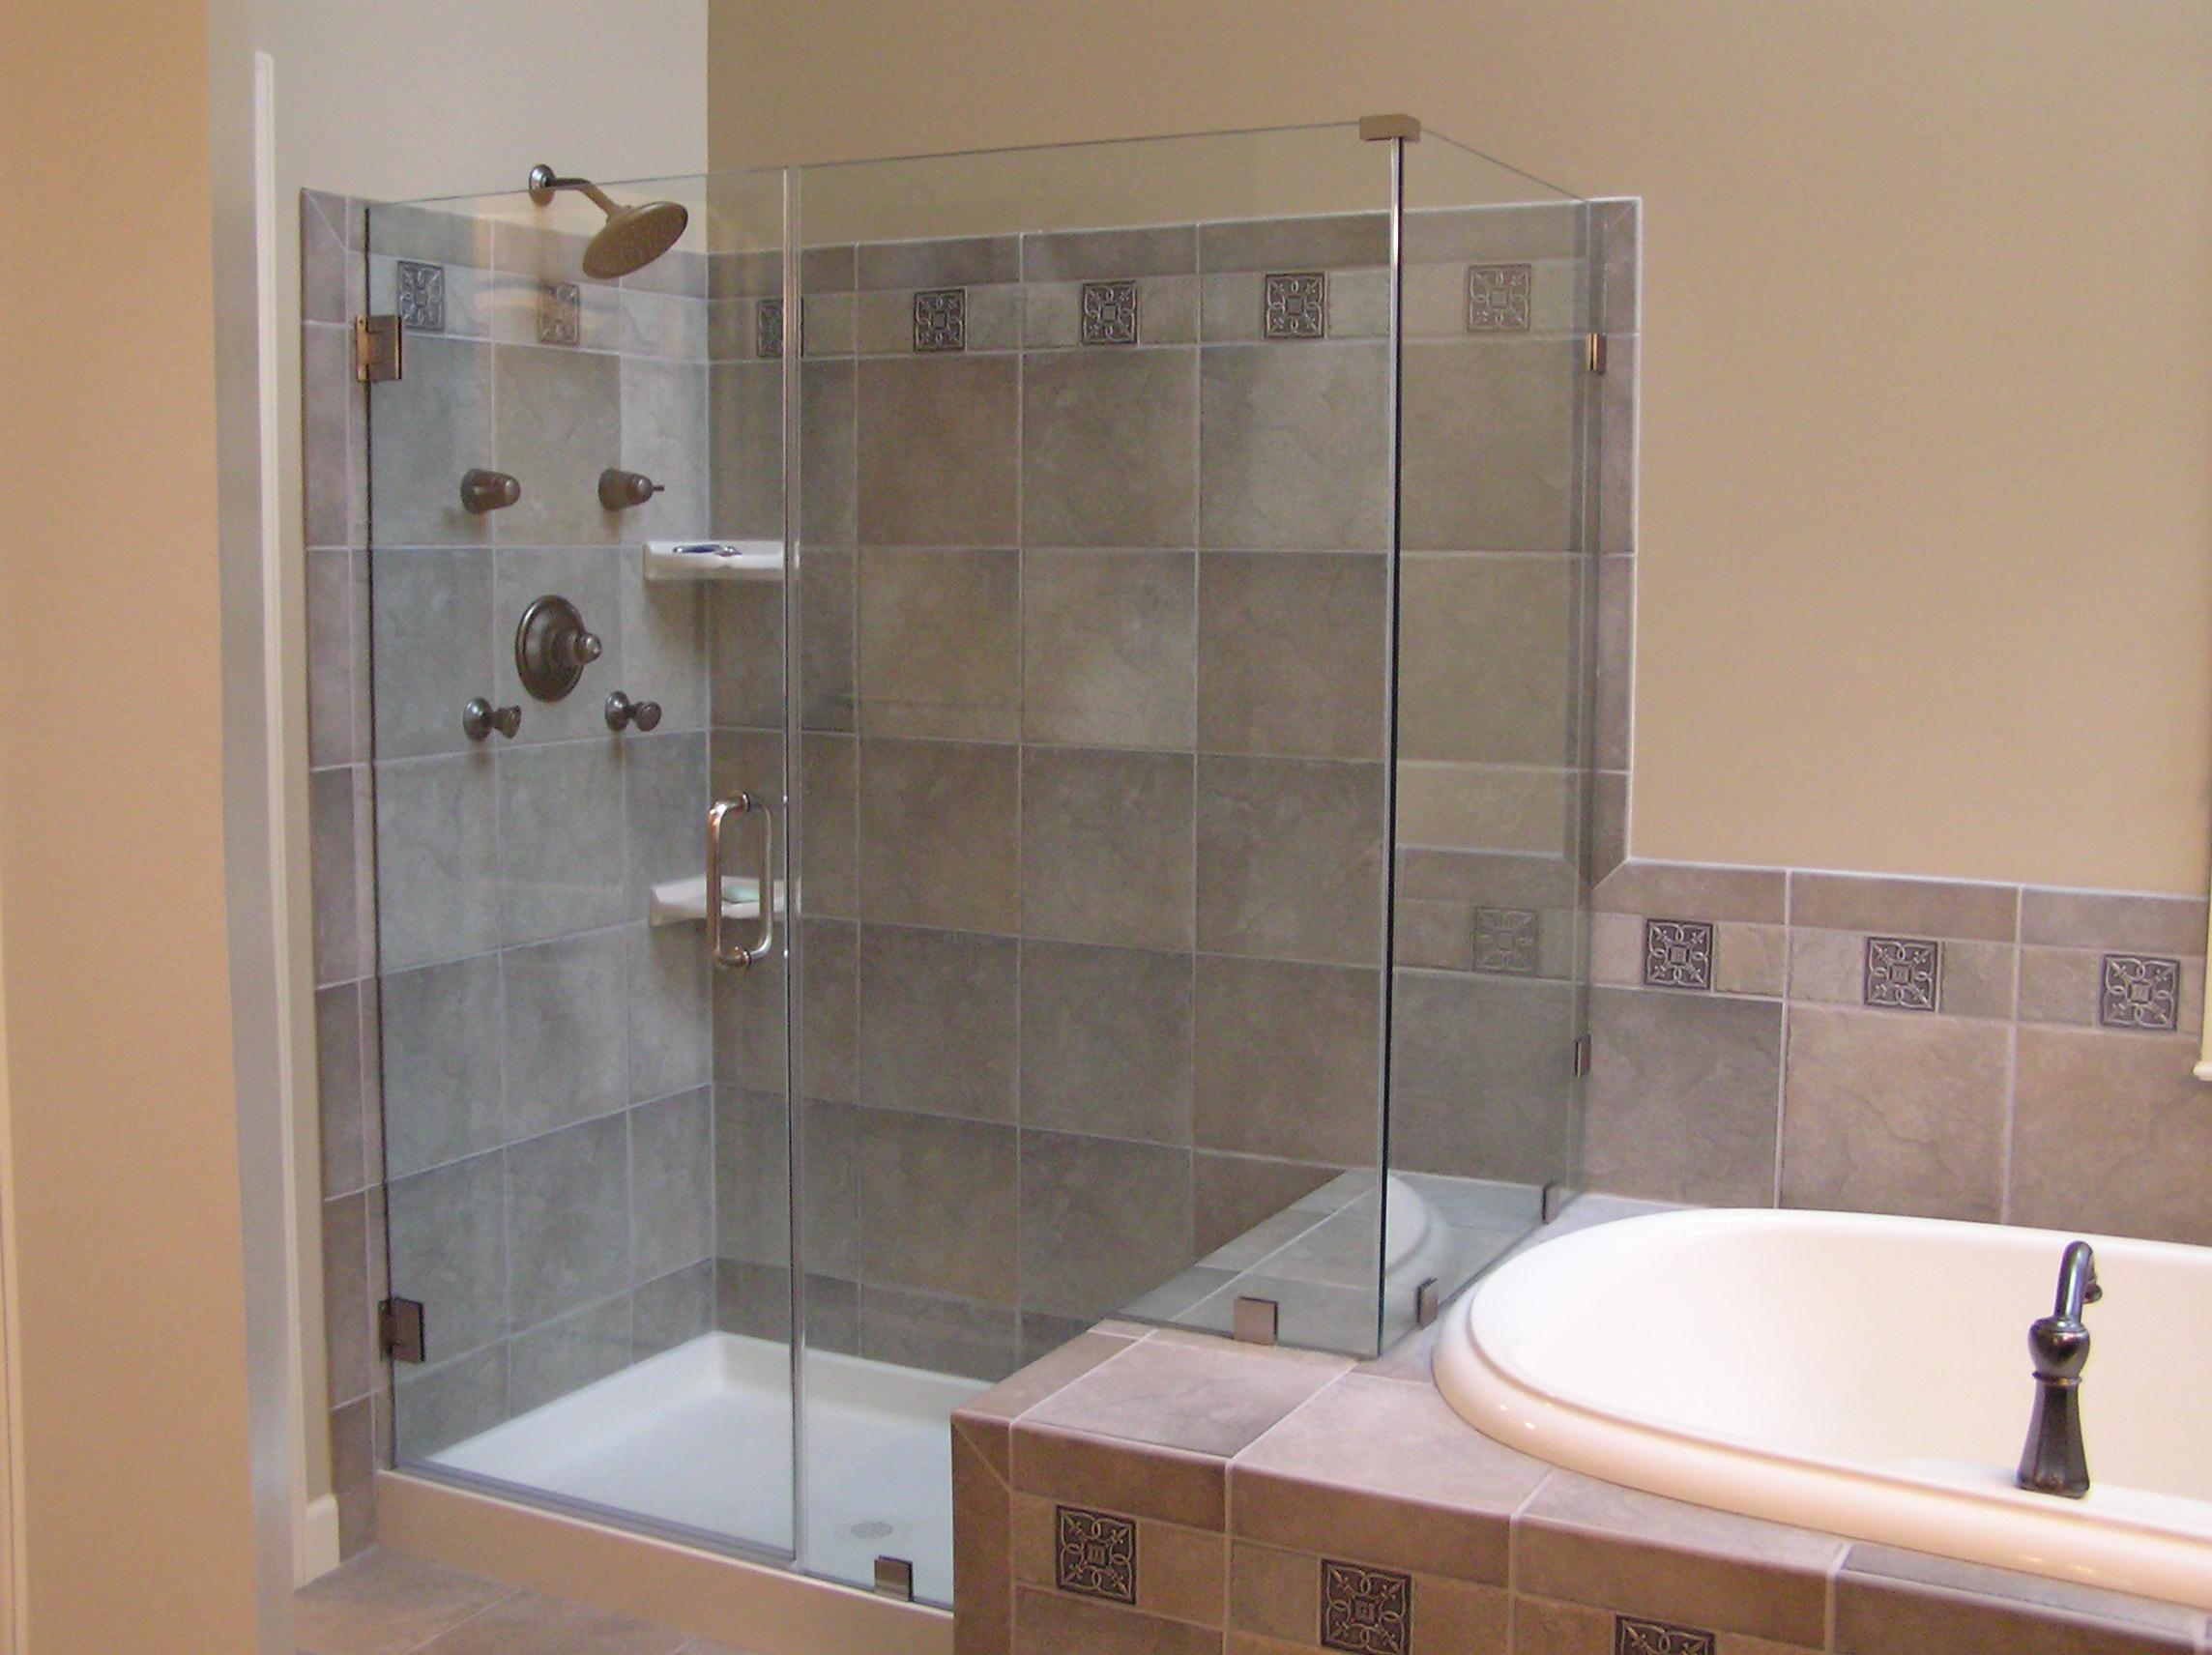 Bathroom Remodel Delaware Home Improvement Contractors - Shower remodel ideas for small bathroom ideas